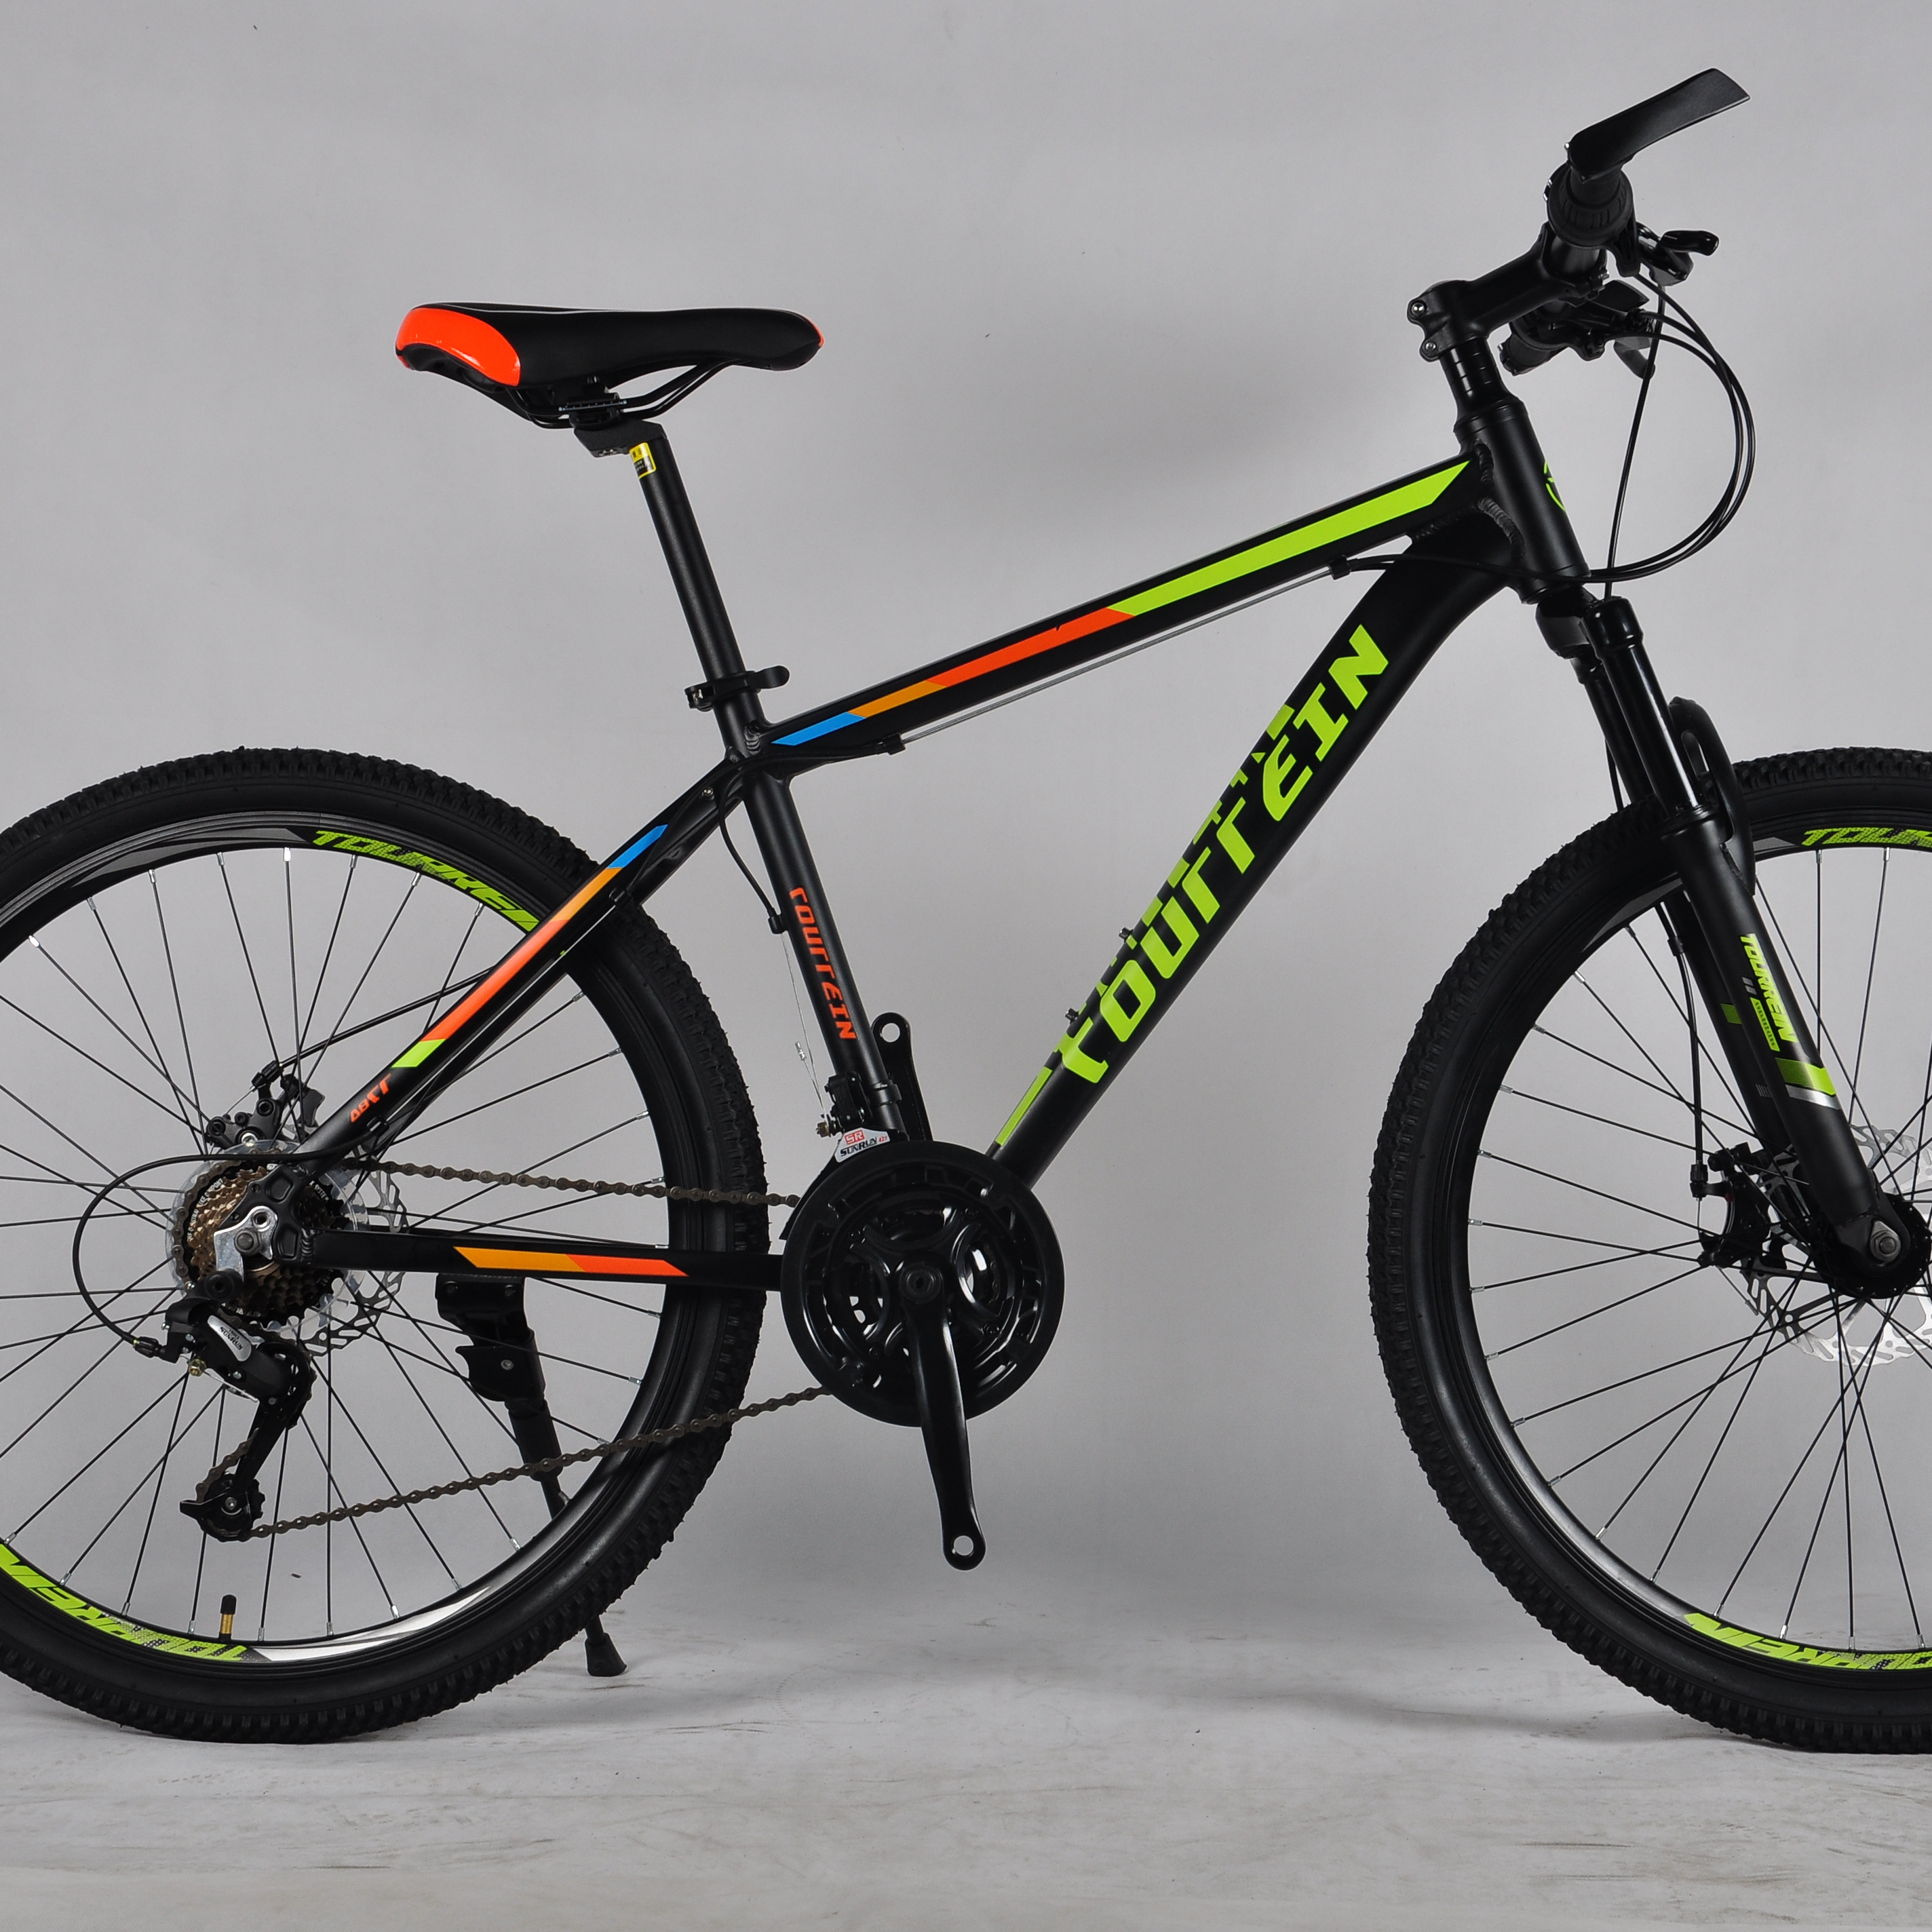 26 Inch Wheels Bike Aluminum Alloy 6061 Frame 24 Speed Disc Brake Adult Bicycle Tianjin Factory Price Chinese Bicycles Mtb Buy Bicycle Chinese Bicycles Mtb Bicycle Bike Bmx Product On Alibaba Com